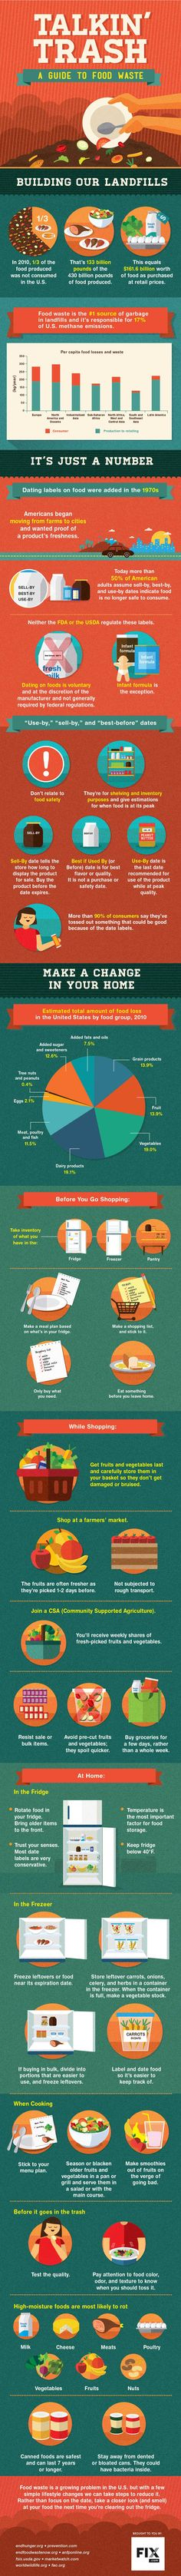 A common sense guide for curbing food waste This infographic is a perfect reminder that you don't have to throw out as much as you think. Recycling Facts, World Hunger, Food Security, Sustainable Food, Sustainable Living, Food System, Bad Food, Common Sense, Food Design